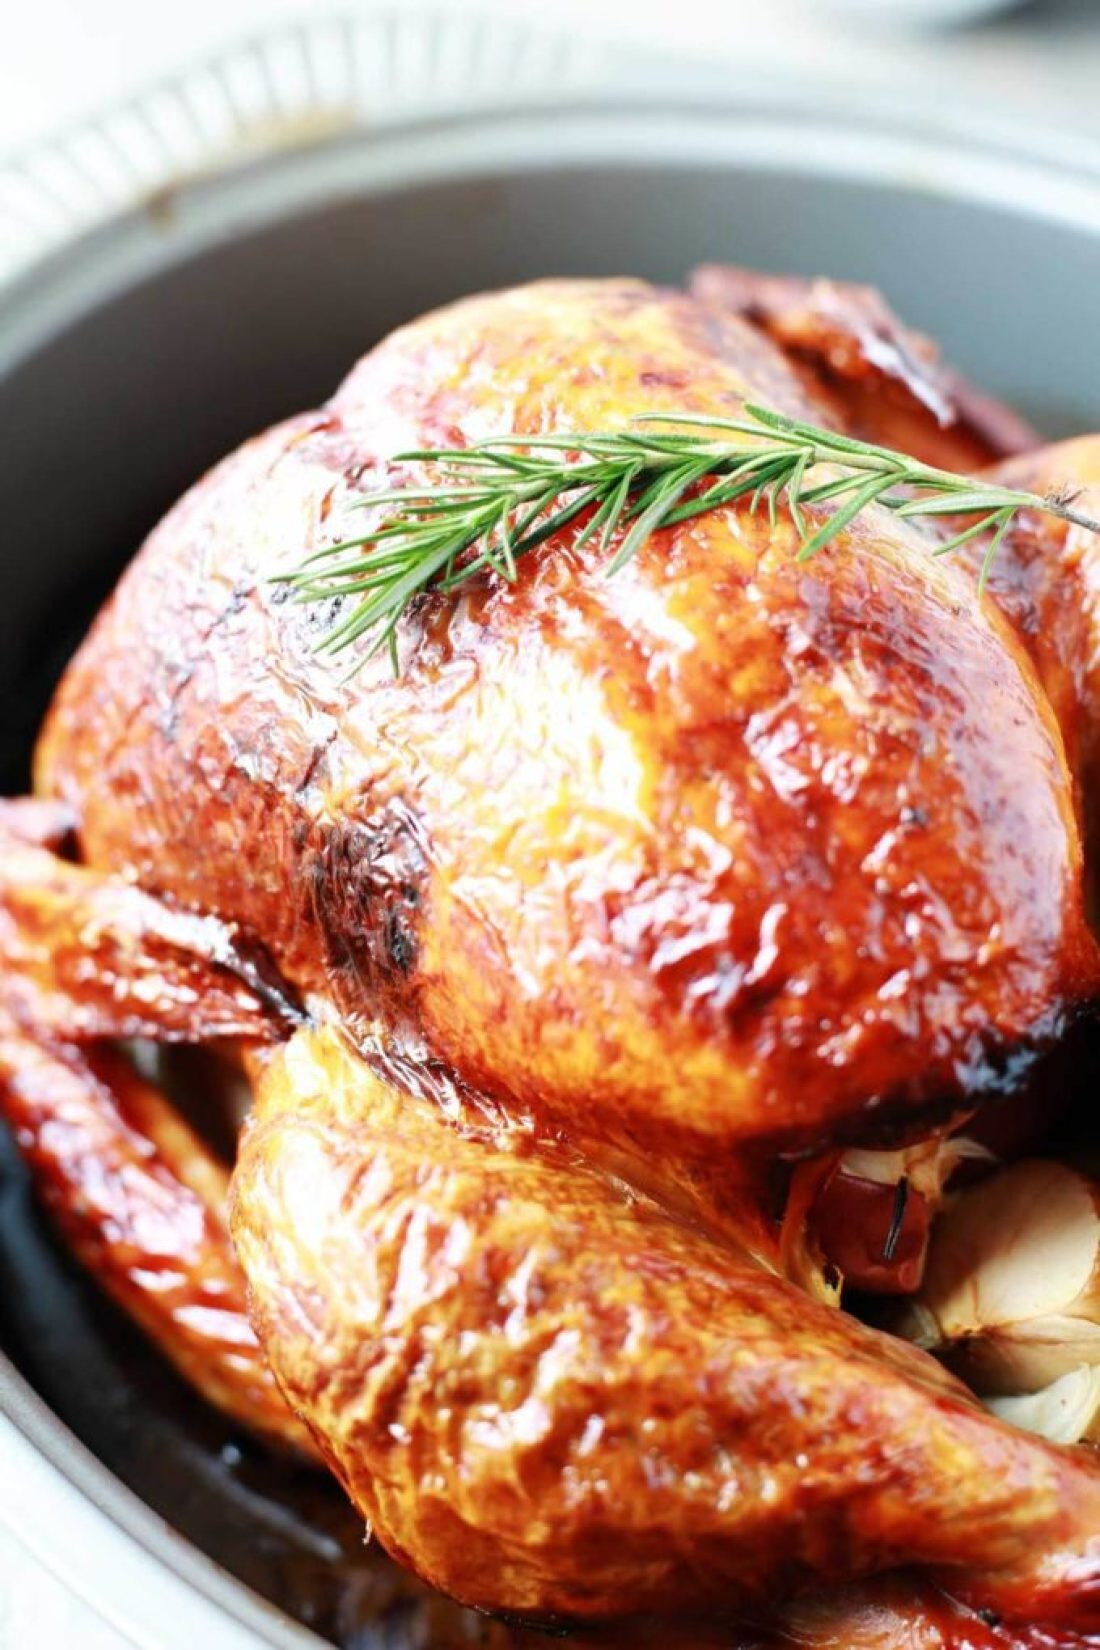 Juicy tender roasted turkey in roasting pan with rosemary for garnish